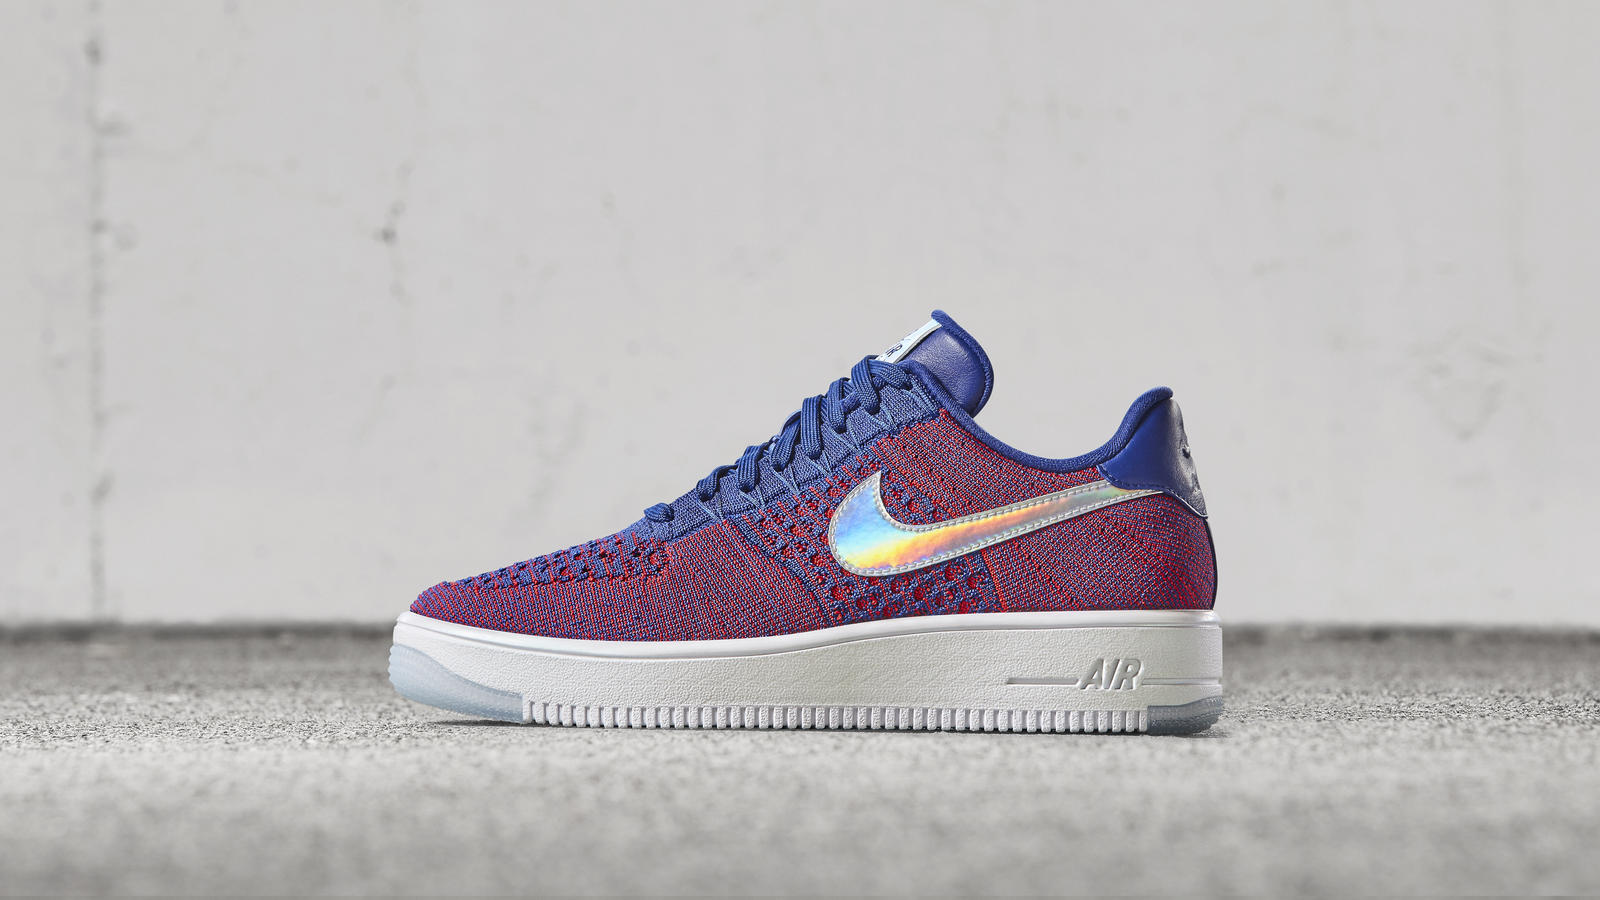 40aed2d05cba ... Air Force 1 Ultra Flyknit Low. Kicks Off Court   Lifestyle   Nike ...